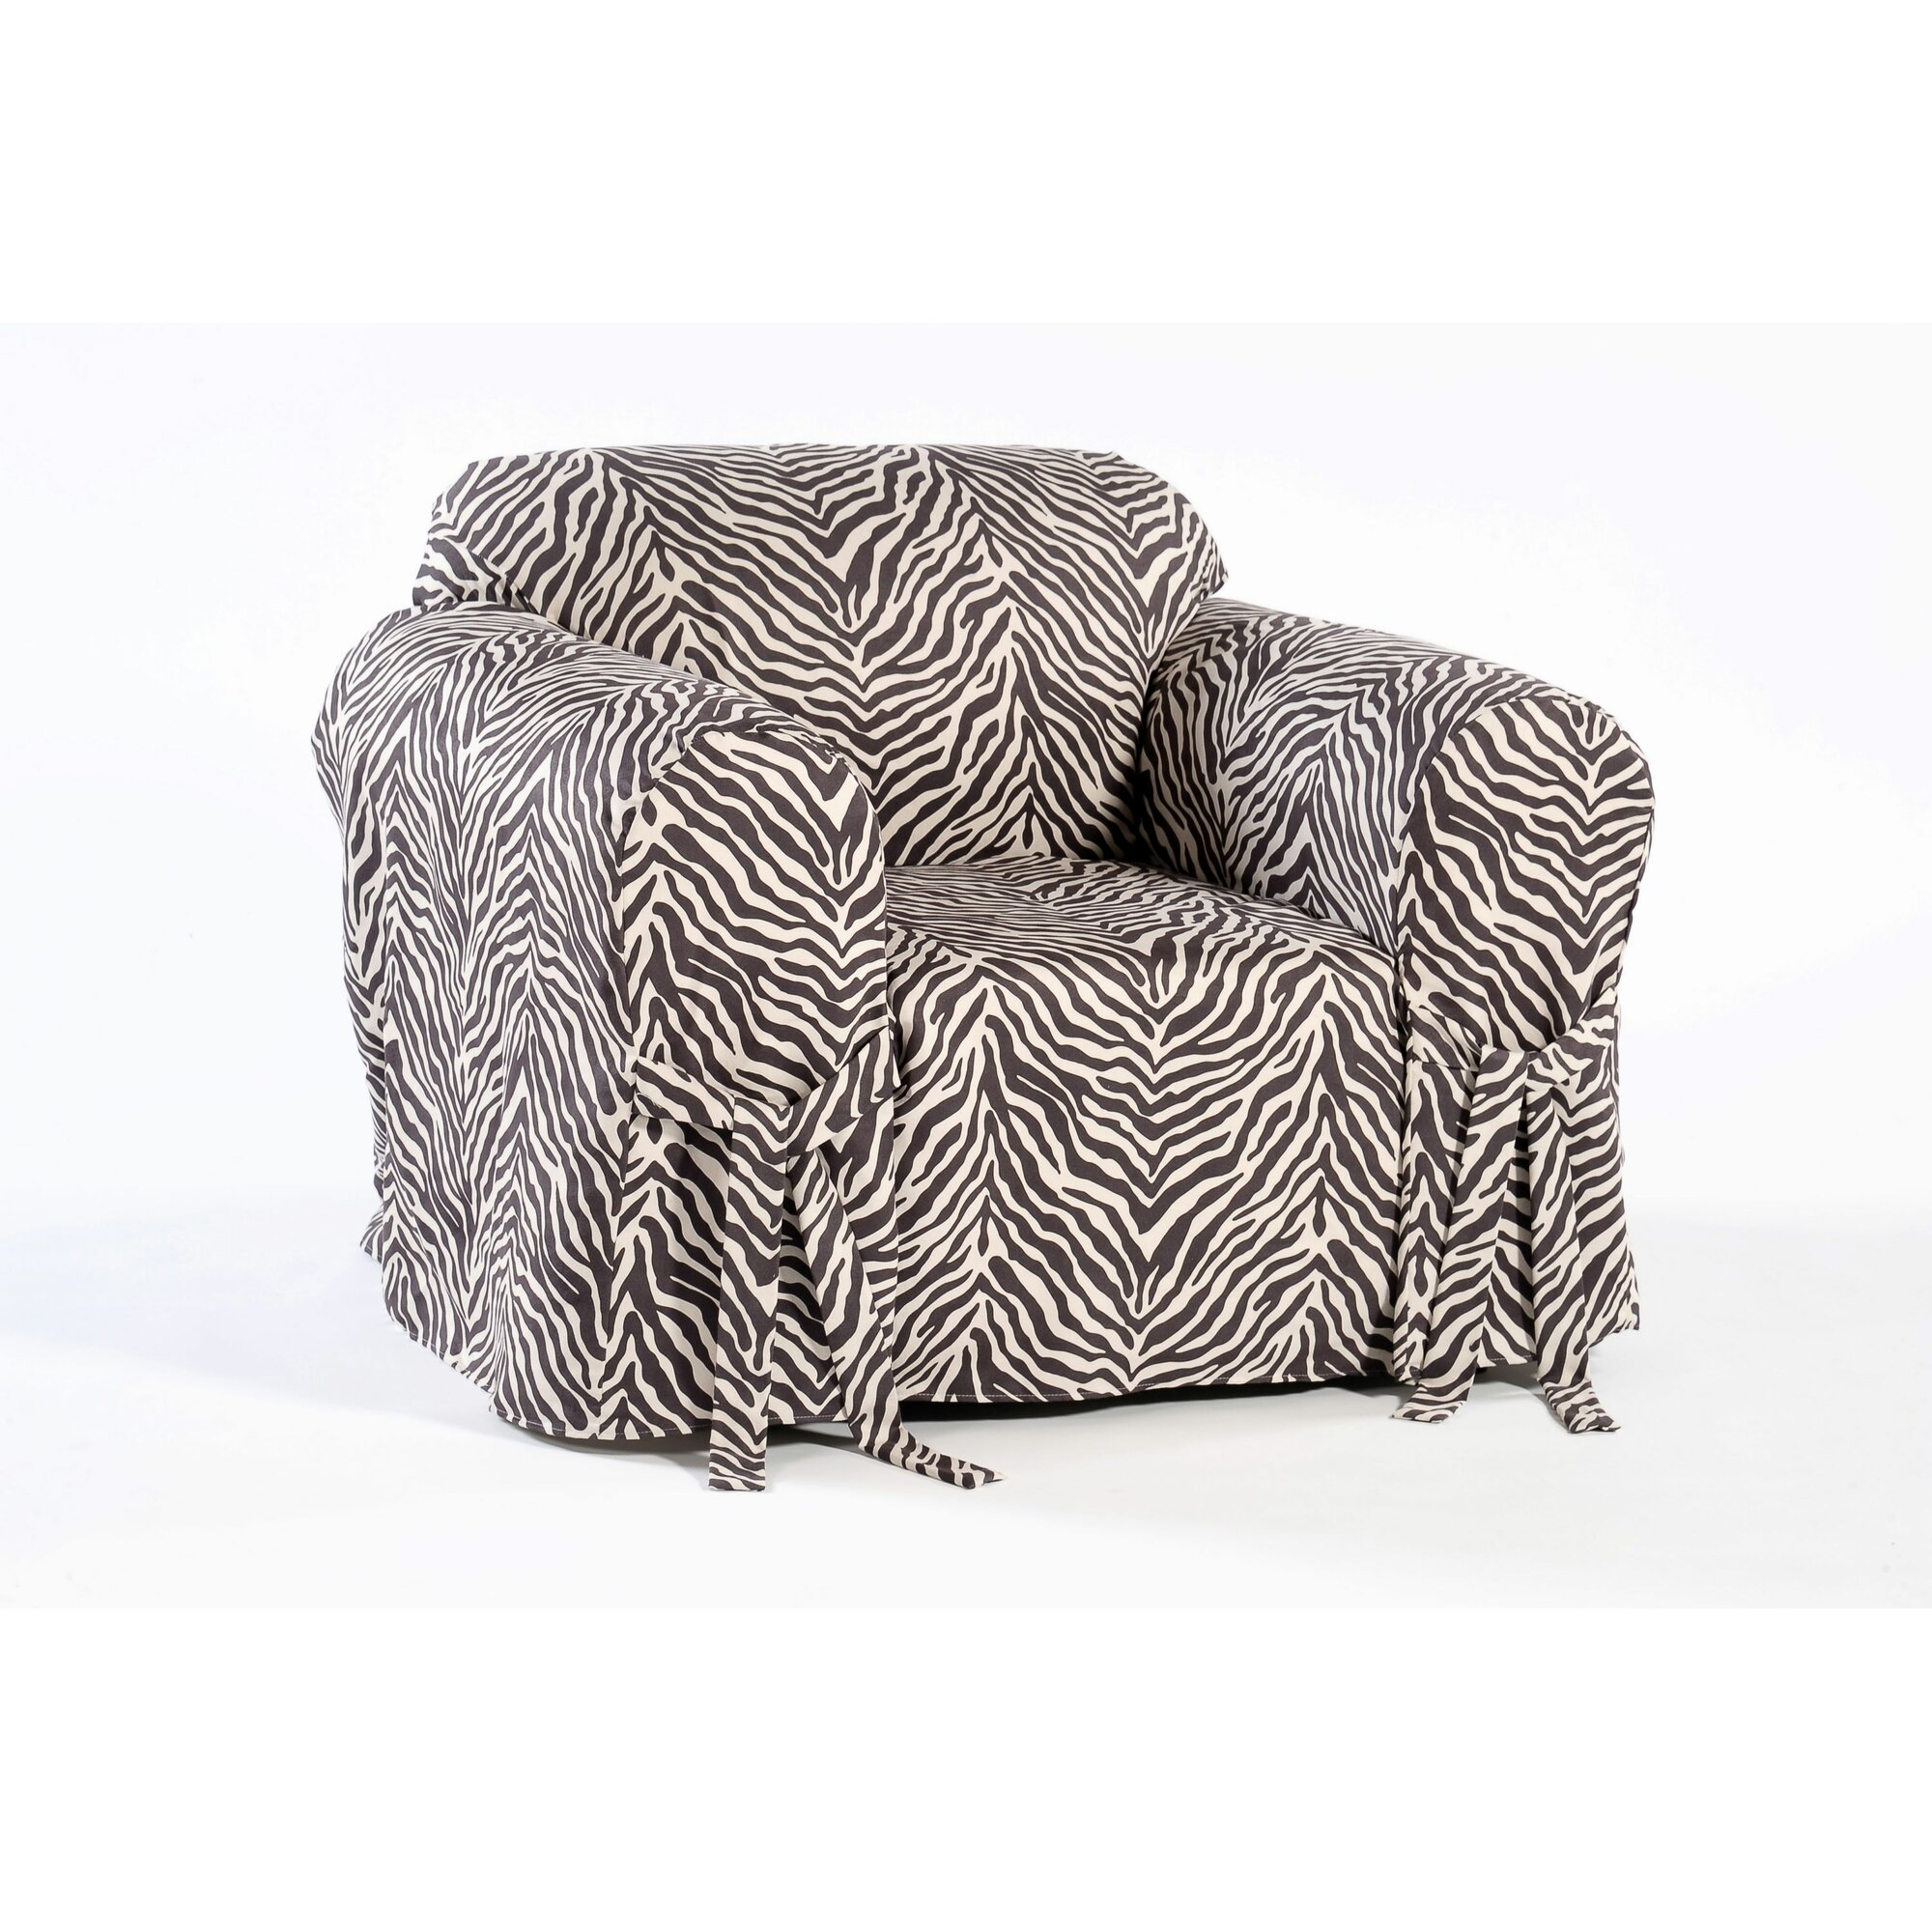 Animal Print Chair Covers Zebra Print Chair Covers Promotion Shop